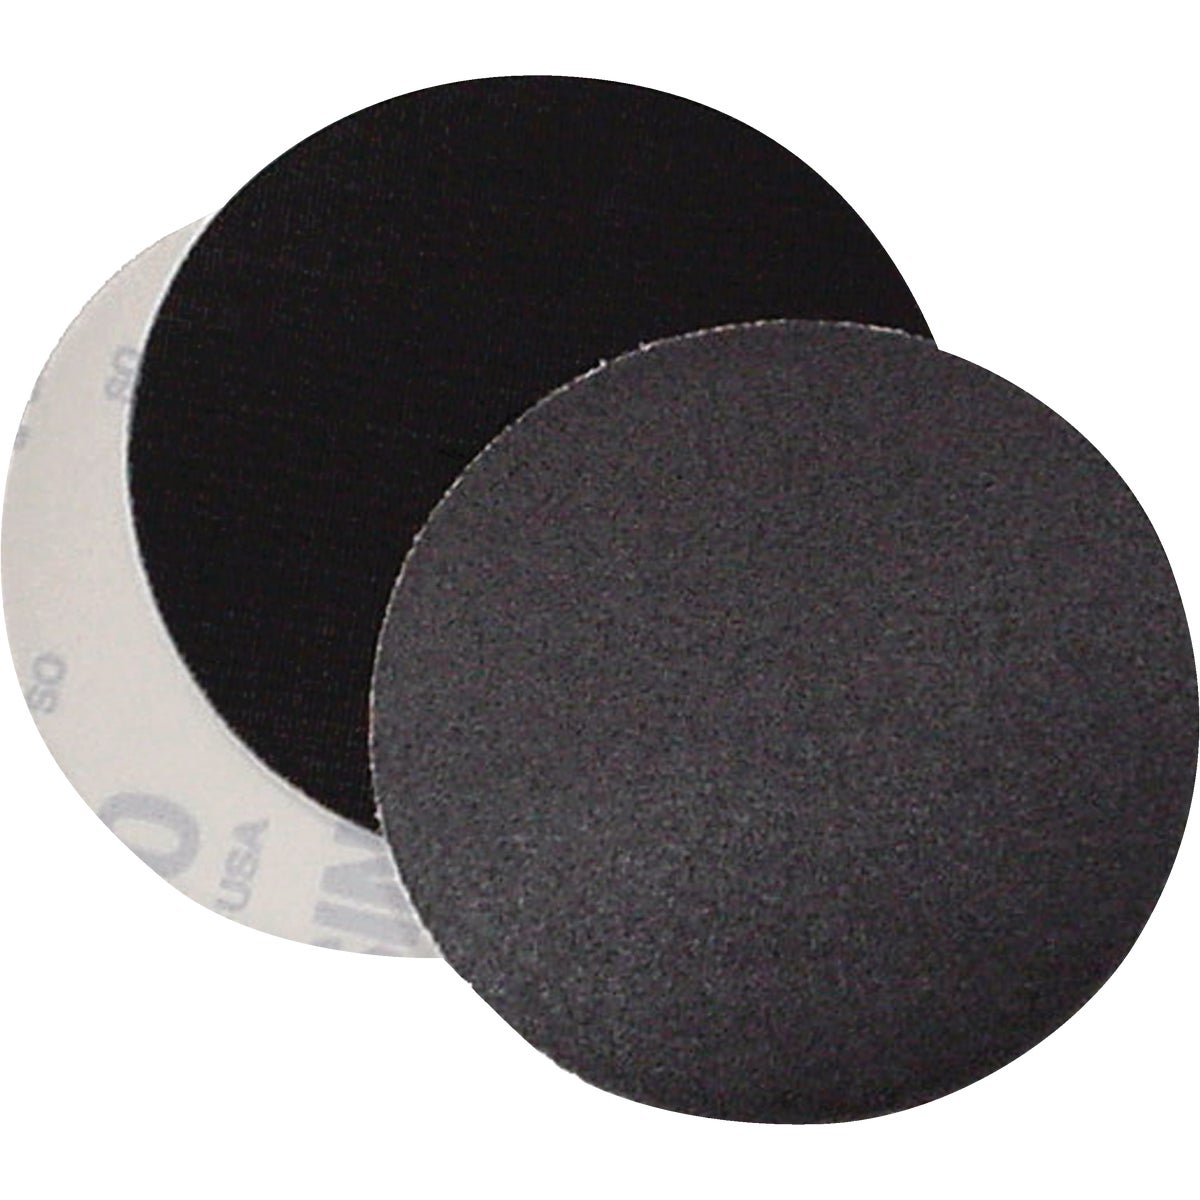 "6-7/8"" 80G SANDING SHEET - 003-867880 by Virginia Abrasives"